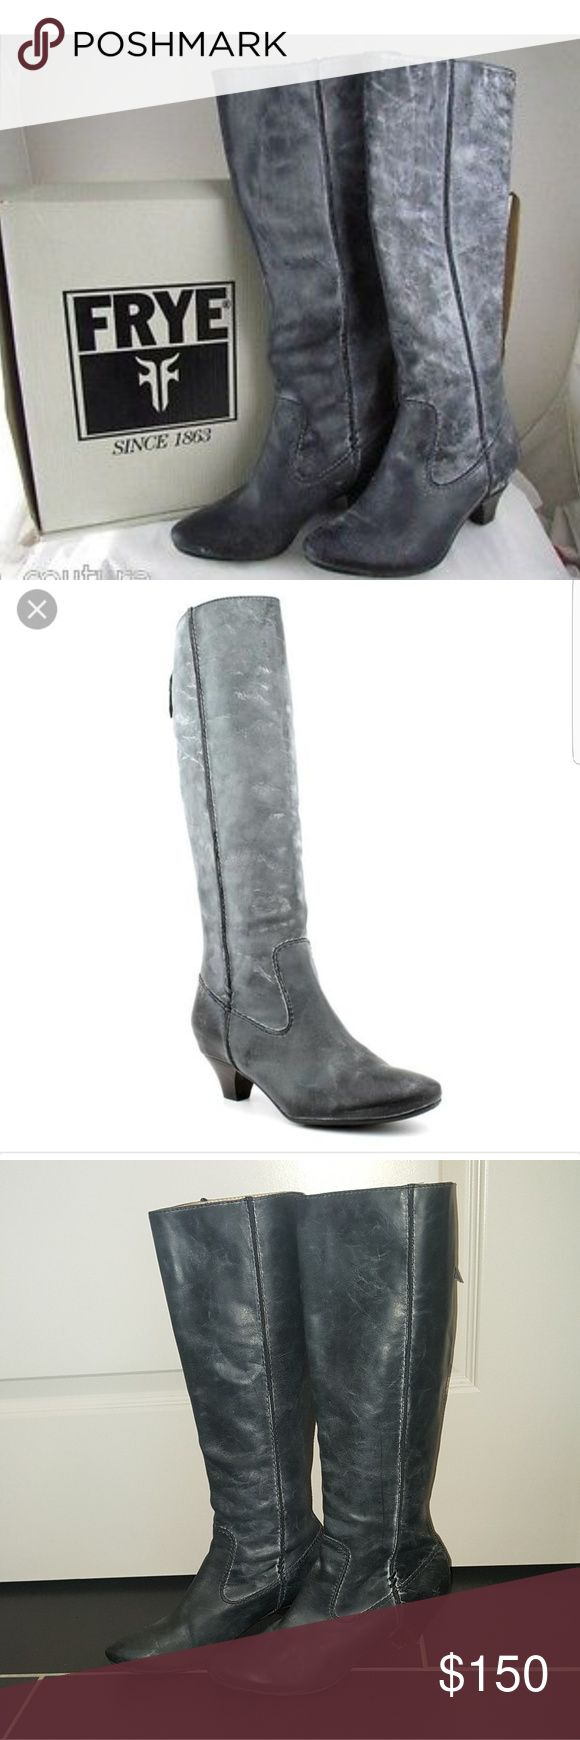 """FRYE Steffi Tall Grey Leather knee high boots $358 FRYE Steffi Back Zip TallLeather Knee-High Cowboy Boots in Gray gently used but in great shape size womans 8.5 With an almond toe and dainty heel. Absolutely, positively 100% Authentic! Rich and luxurious leather upper  Smooth leather lining  Plushly cushioned leather insole  Rear full zip entry for easy on/off  Durable and resilient leather/rubber outsole  Approximately 1 1/2"""" stacked heel and 15""""shaft PLEASE NOTE GLUE ON INSIDE IS FROM…"""